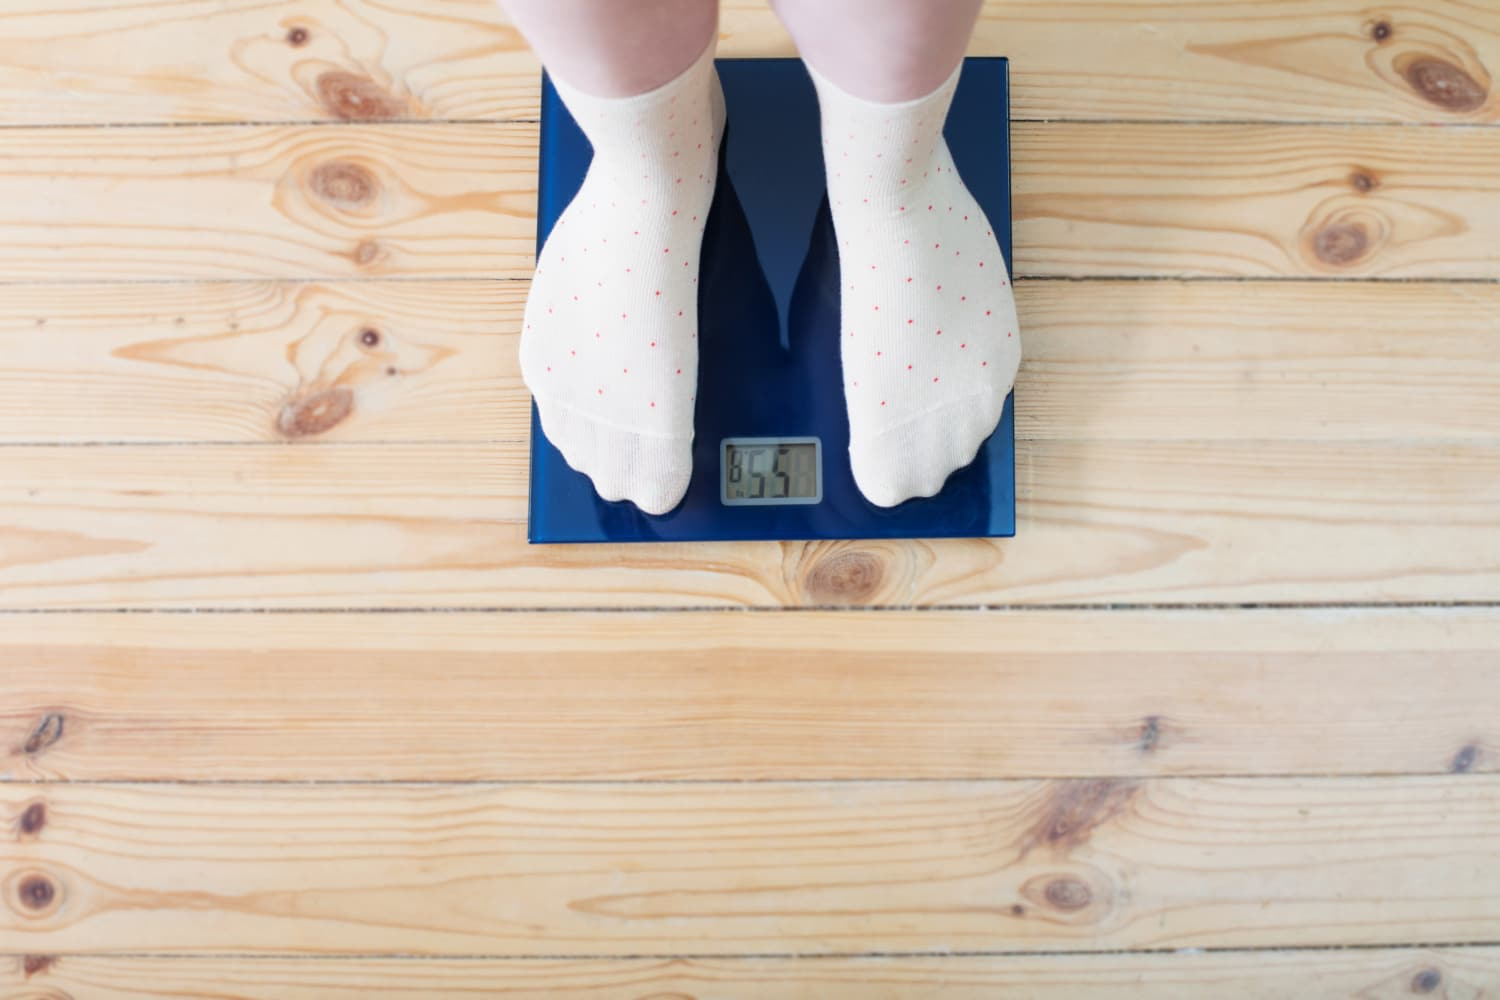 Helpful Tips for Proper Weight Gain in Kids